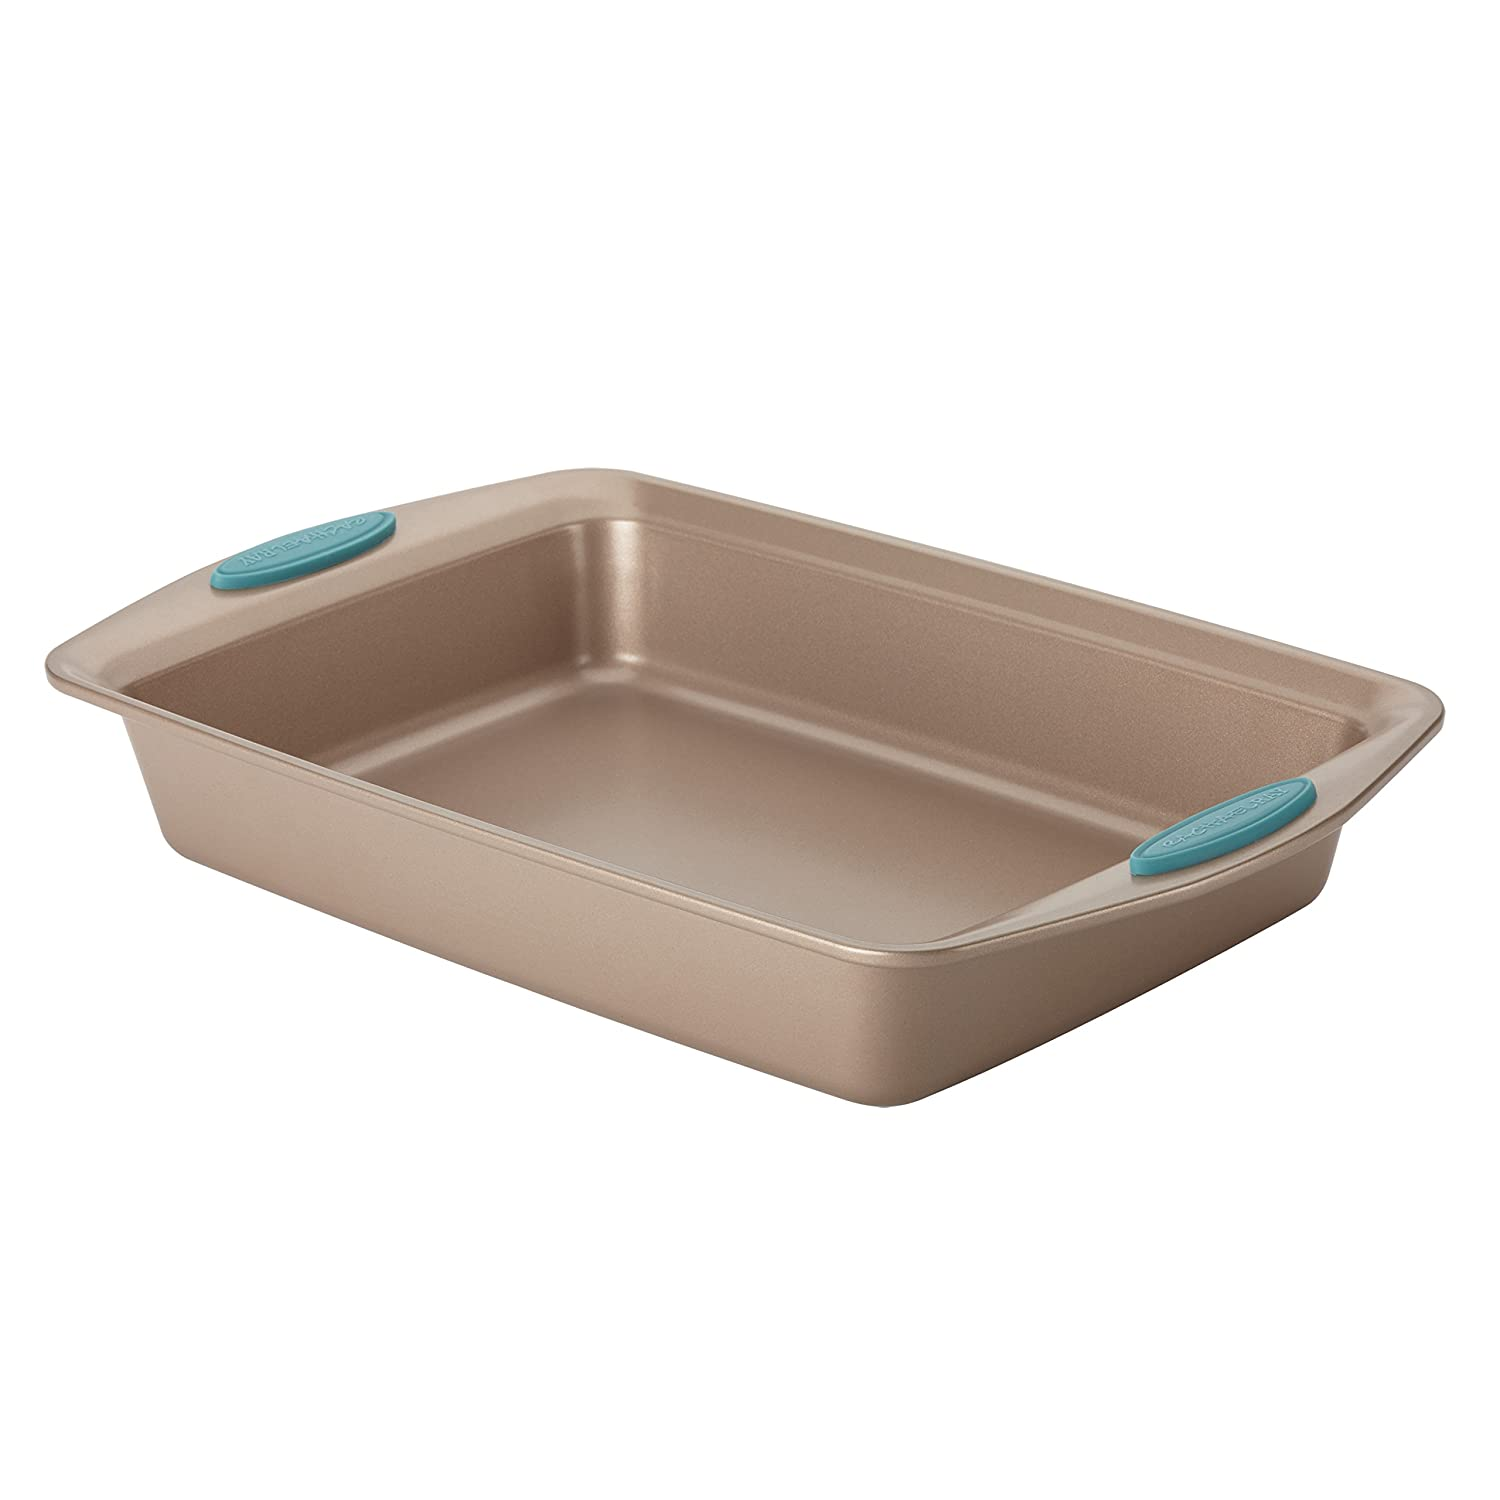 Rachael Ray Cucina Nonstick Bakeware 9-Inch by 13-Inch Rectangle Cake Pan, Latte Brown with Agave Blue Handles 267965